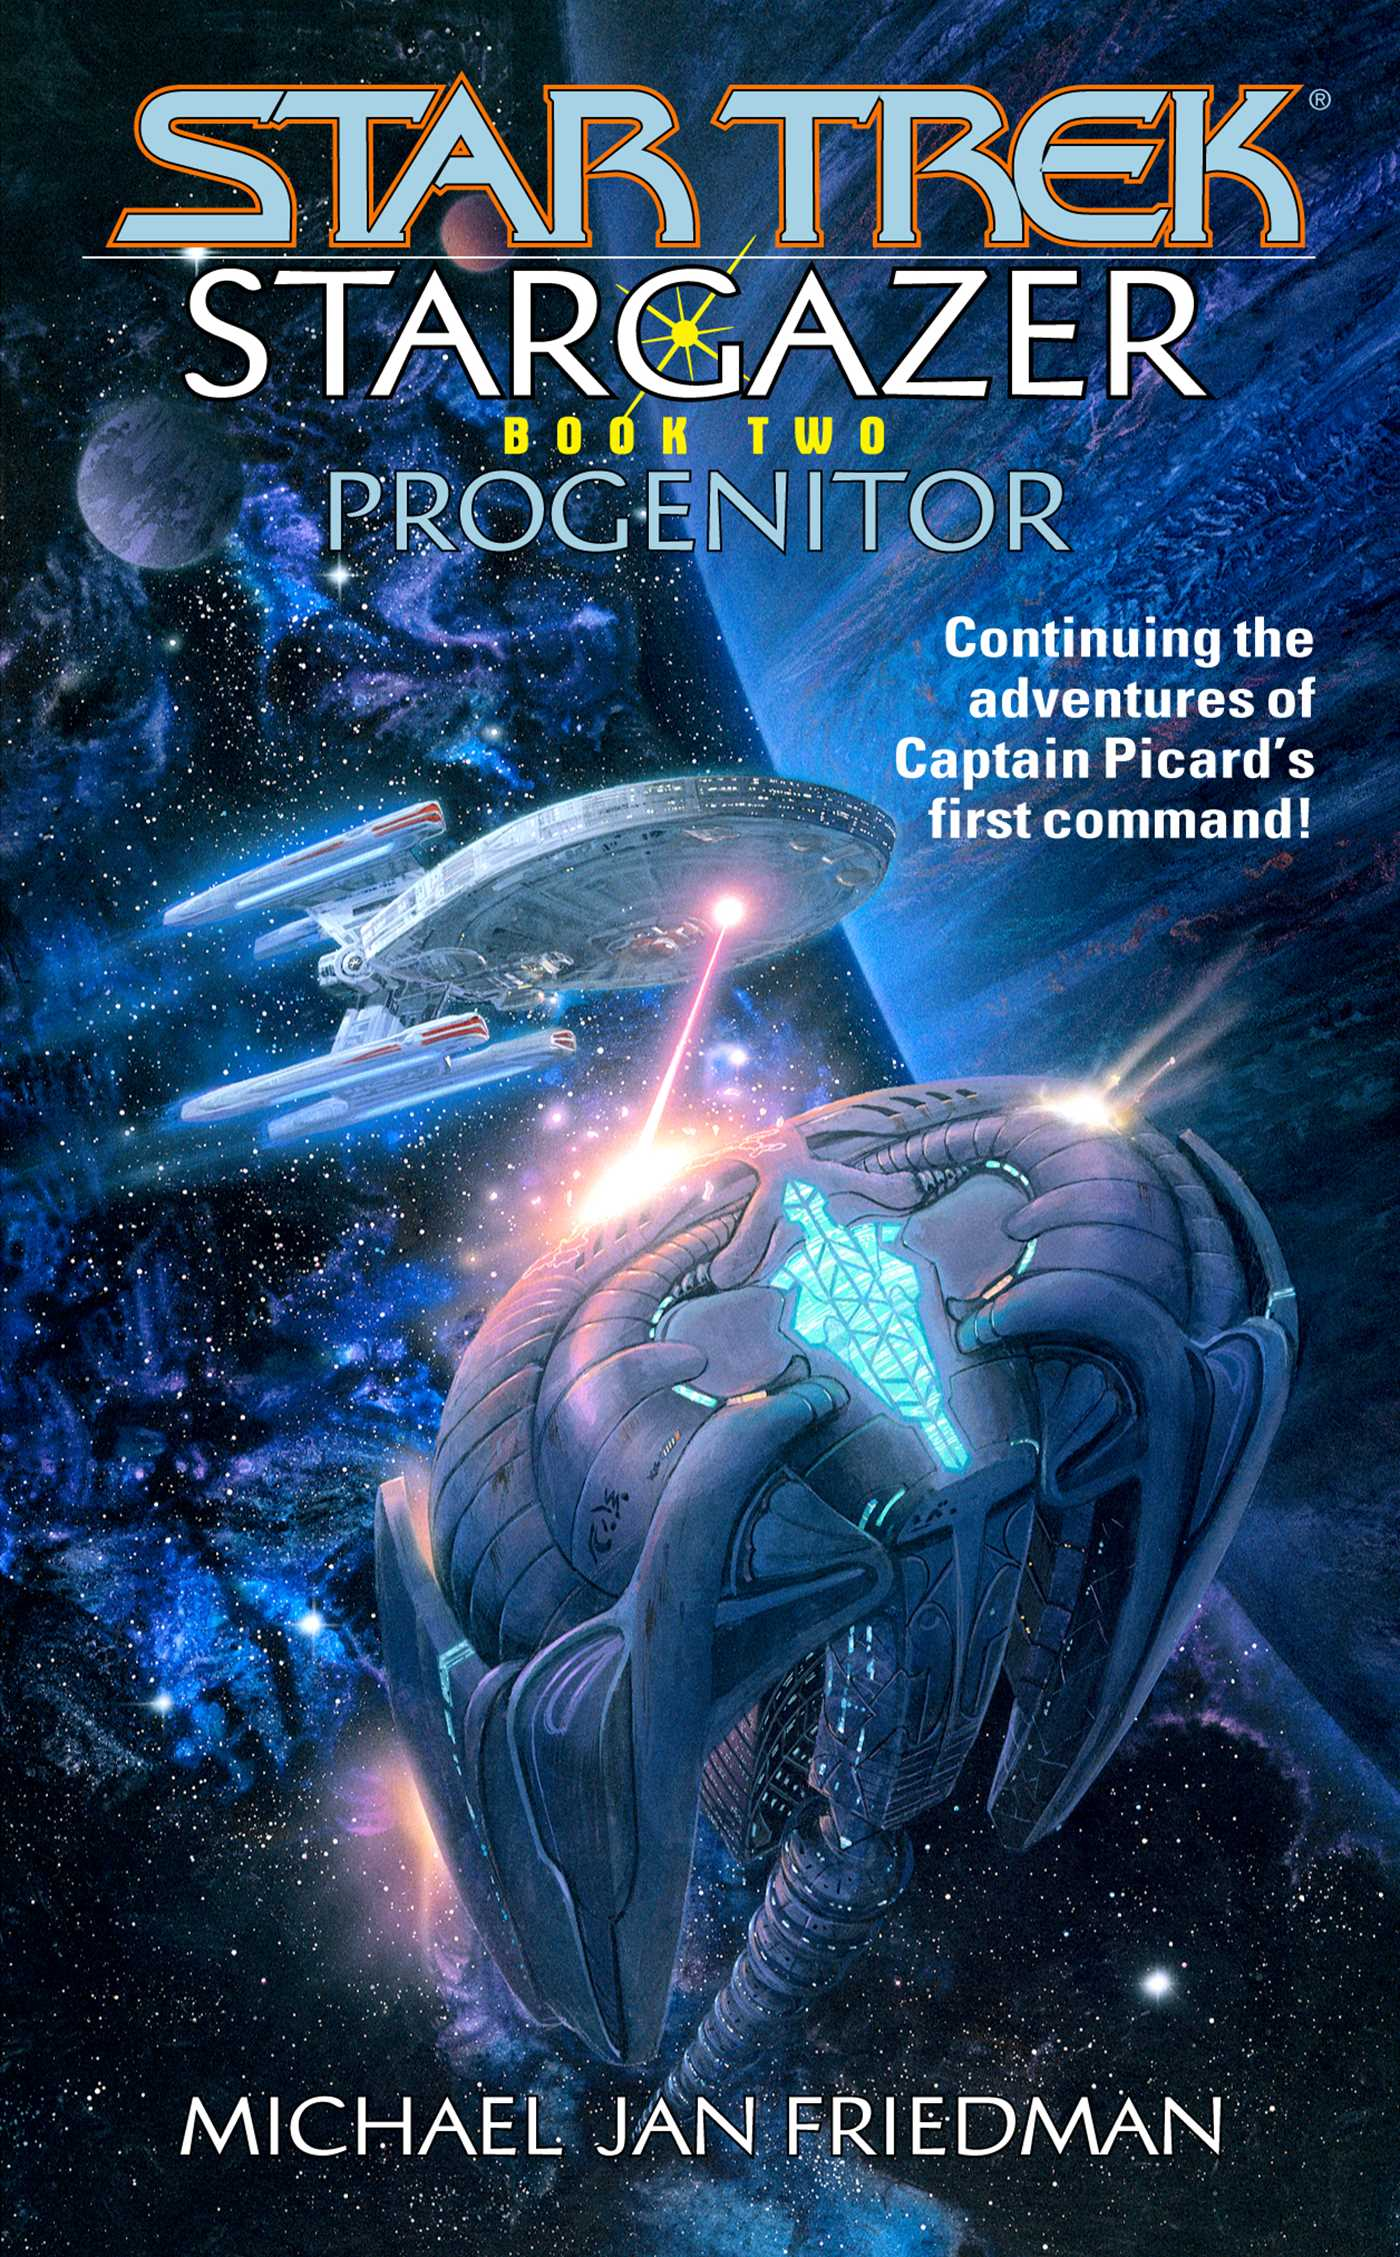 Star trek the next generation stargazer progenitor 9780743427968 hr